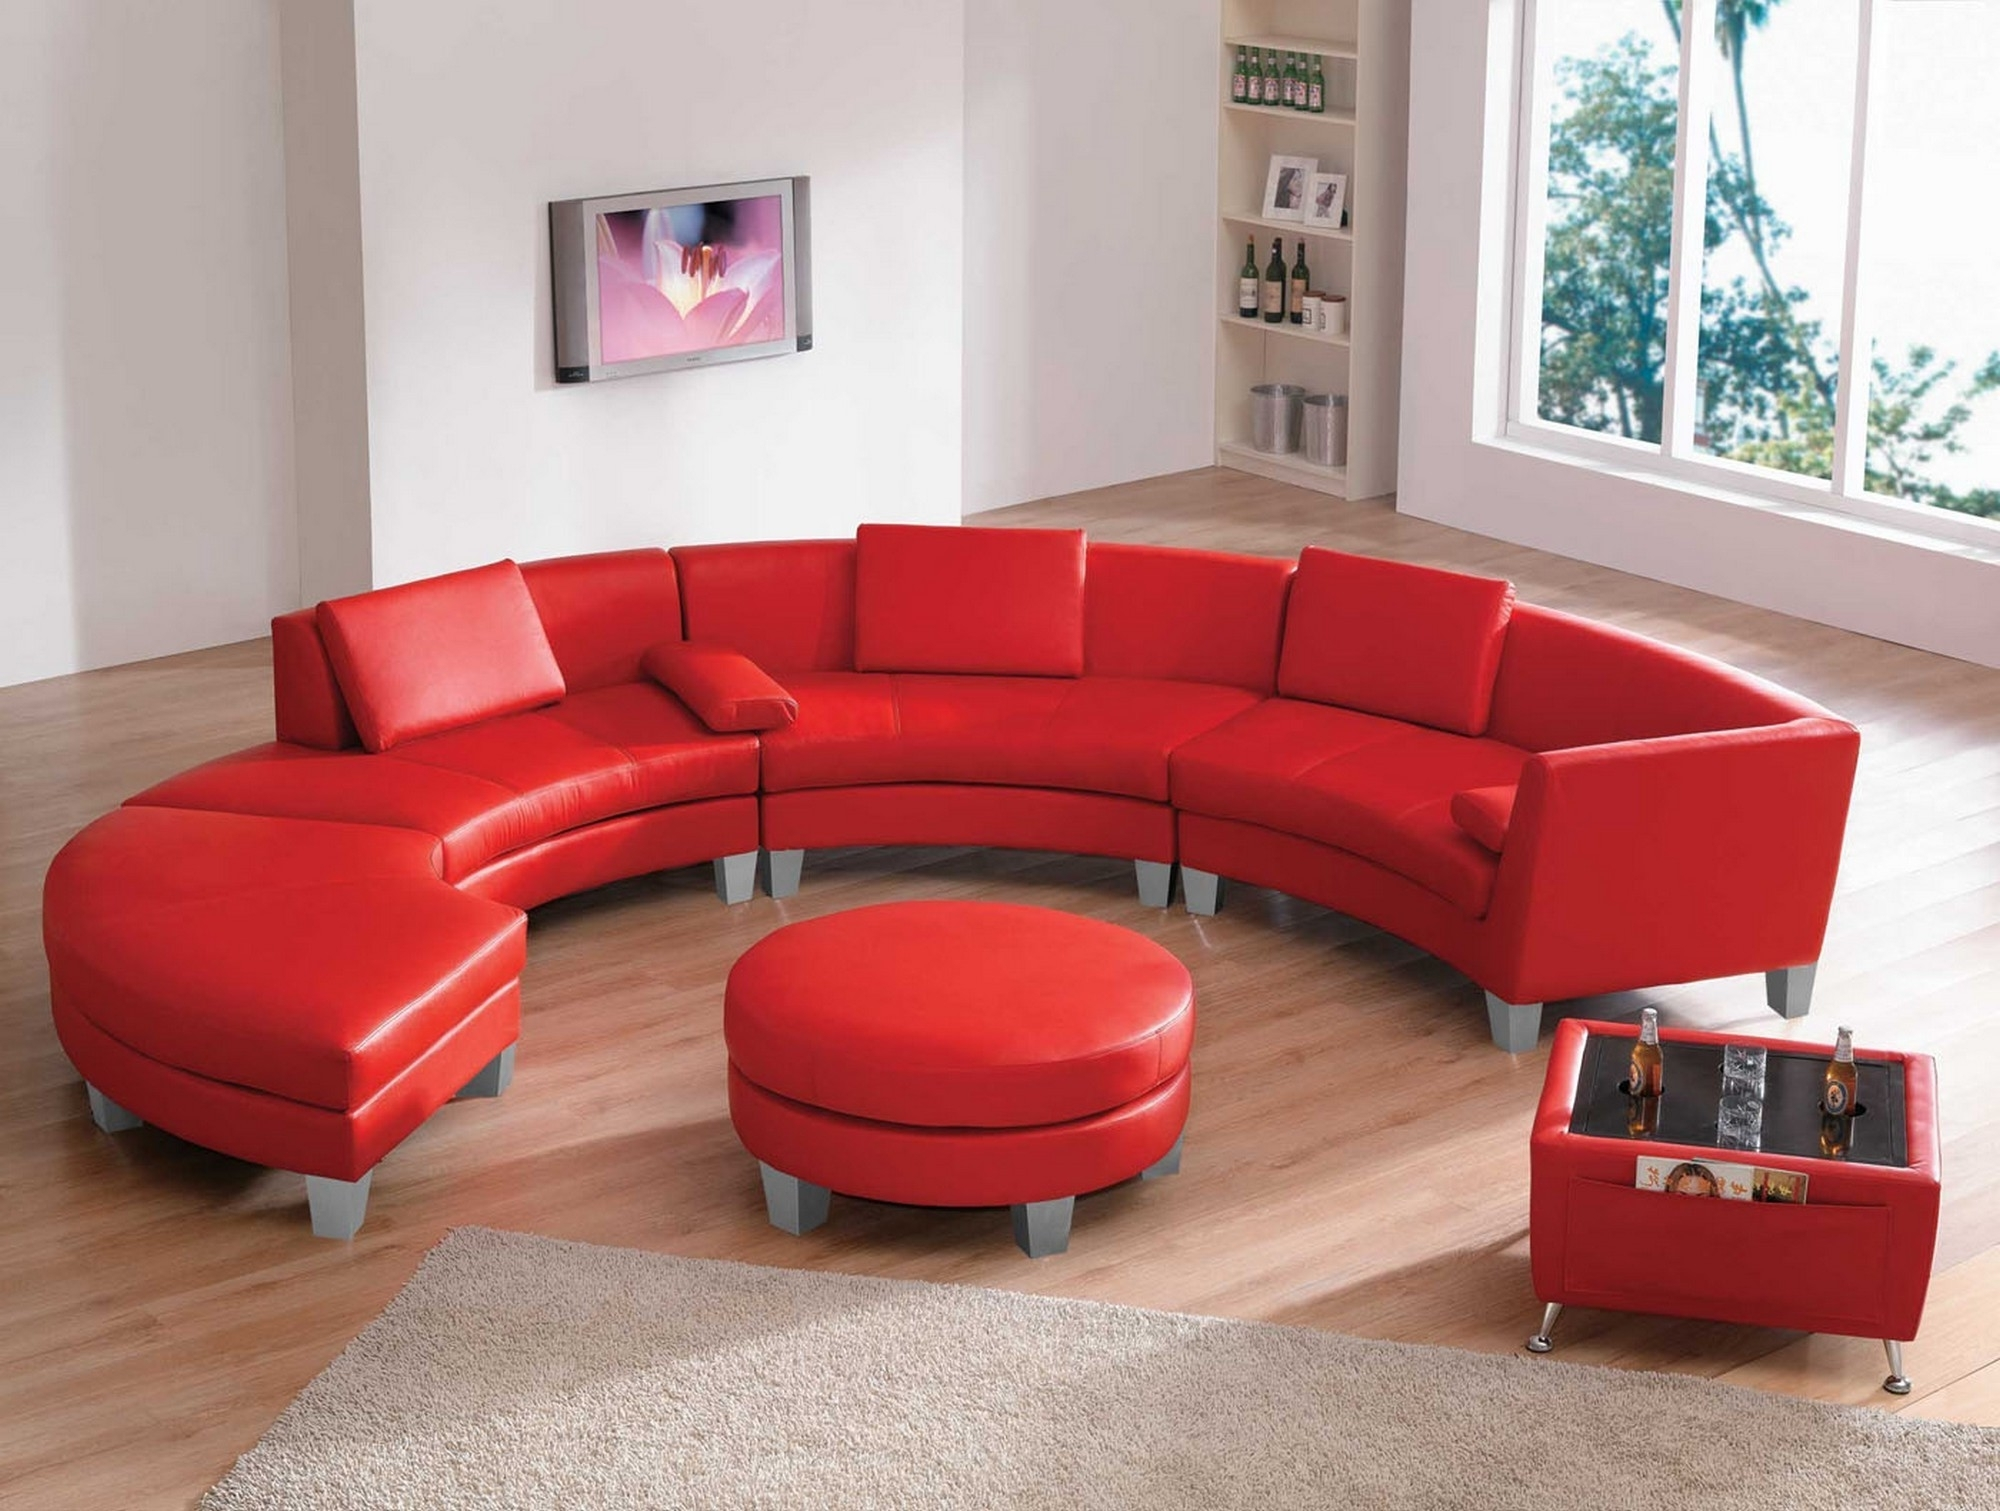 Favorite Luxutr Red Faux Leather Sofa Mixed White Cushions And Chromed Regarding Red Faux Leather Sectionals (View 11 of 15)